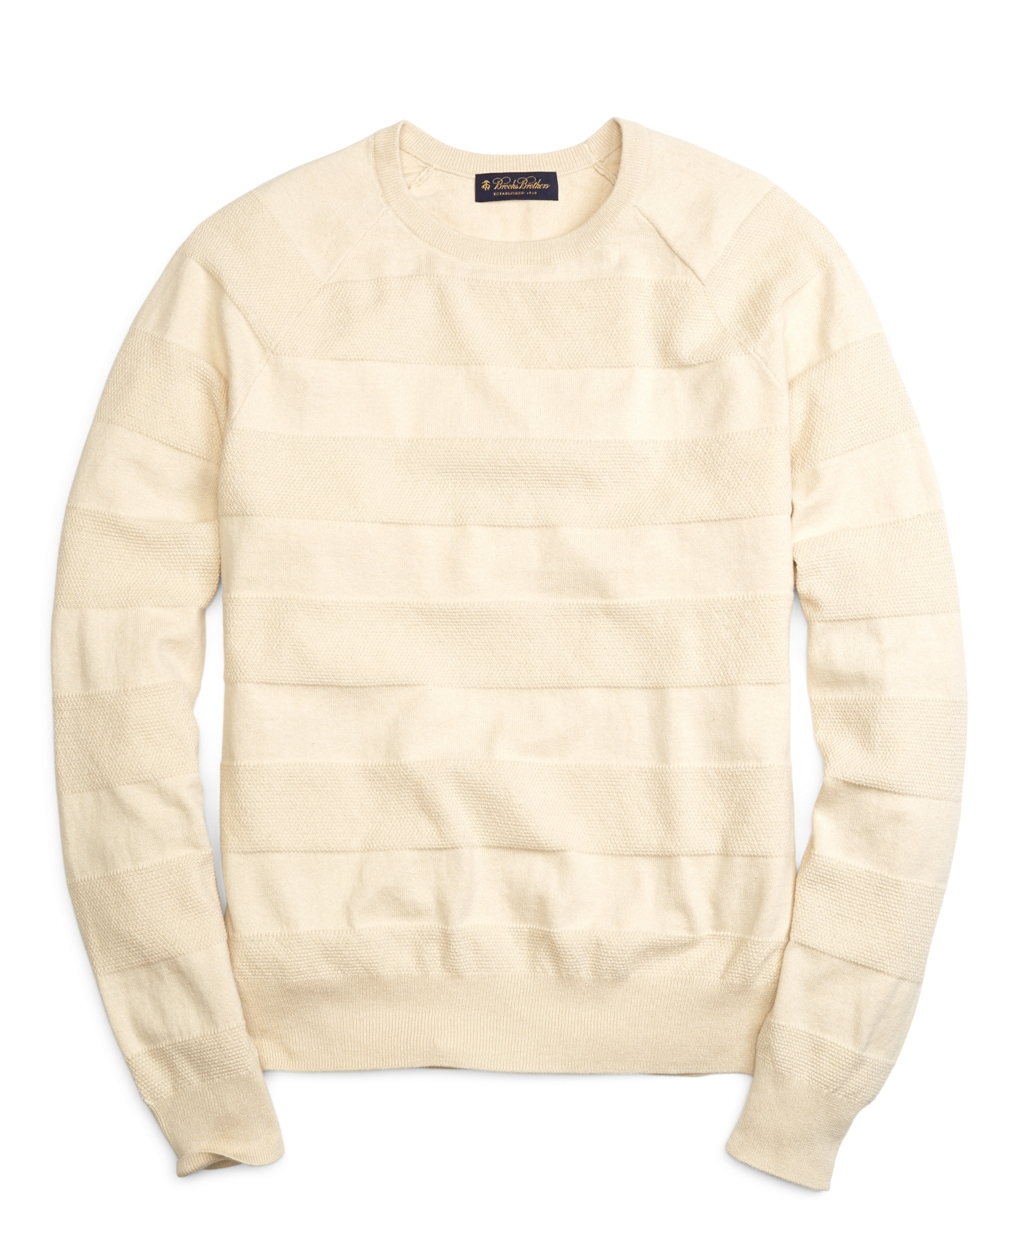 3ccfe4bc5bb5 Lyst - Brooks Brothers Cotton Cashmere Crewneck Tonal Stripe Sweater ...